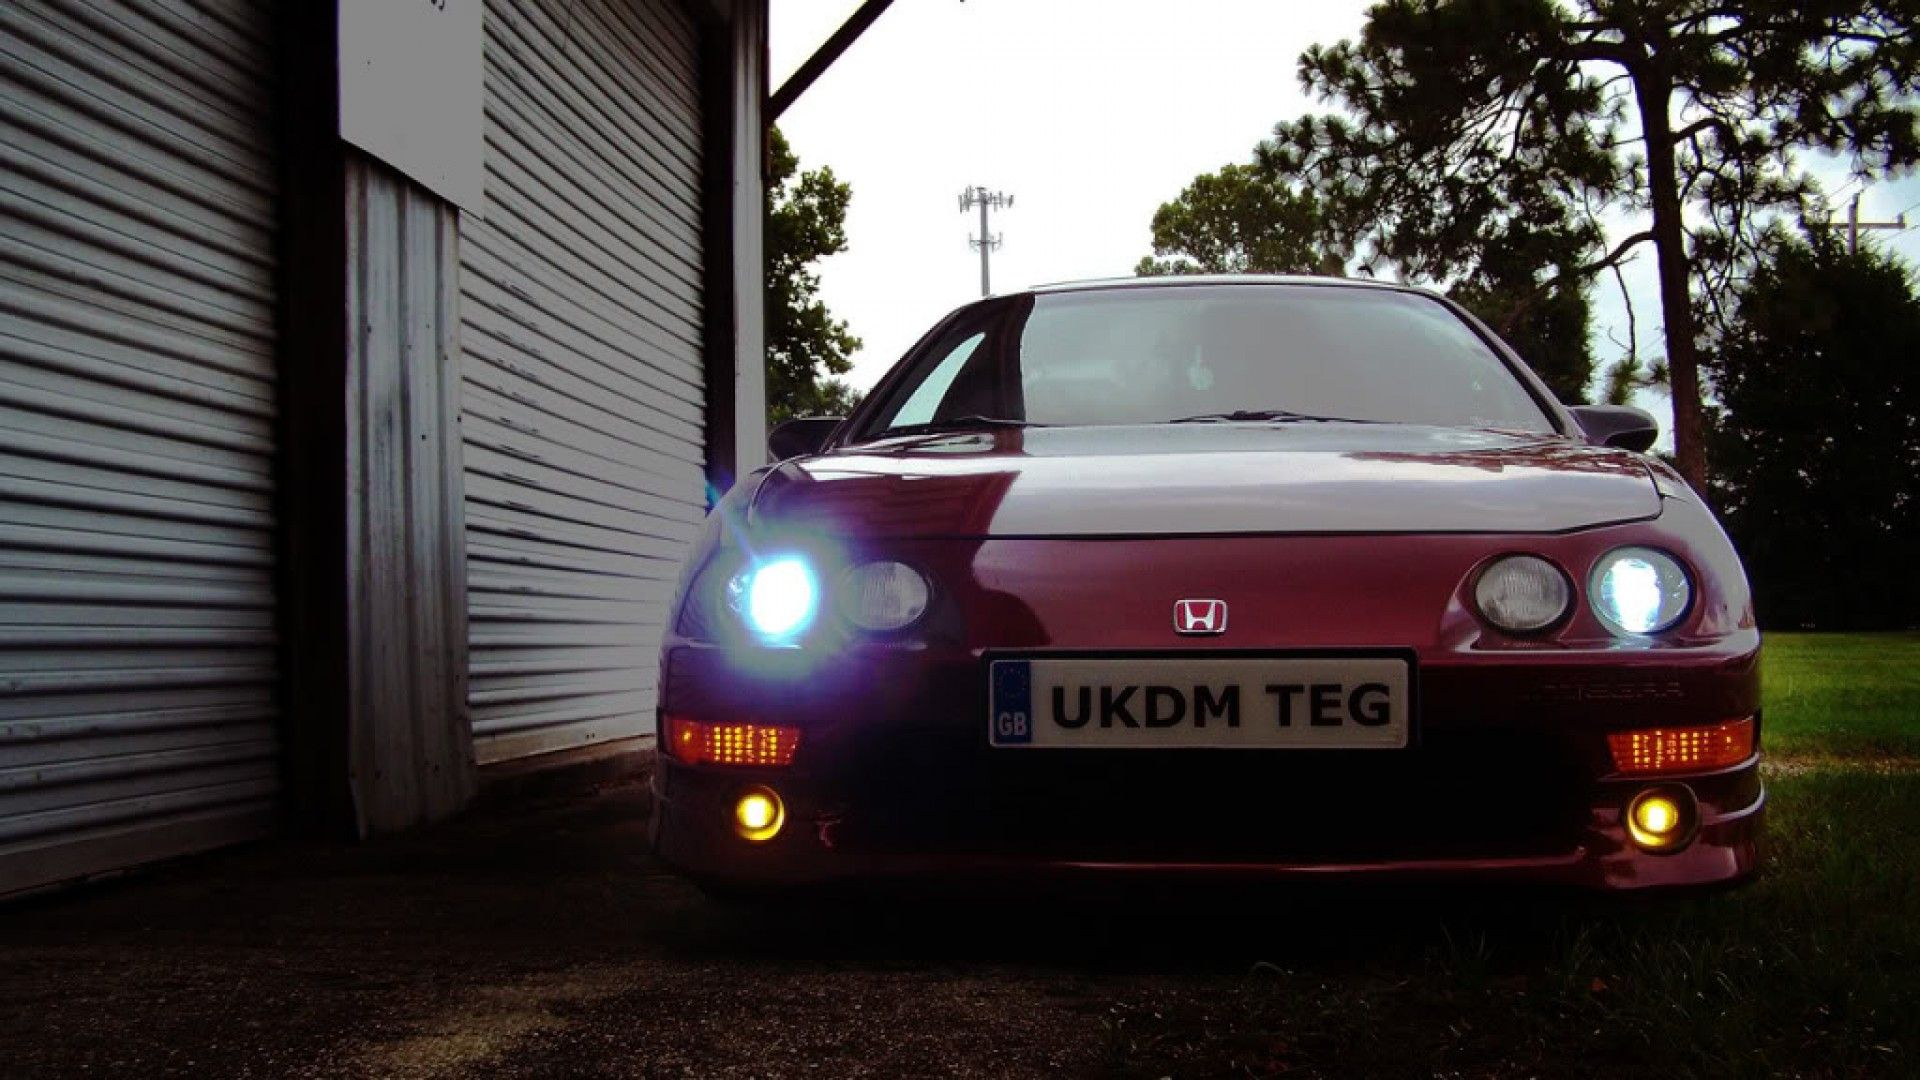 Green Acura Integra RS Turbo GT Pictures Mods Upgrades - Acura integra mods